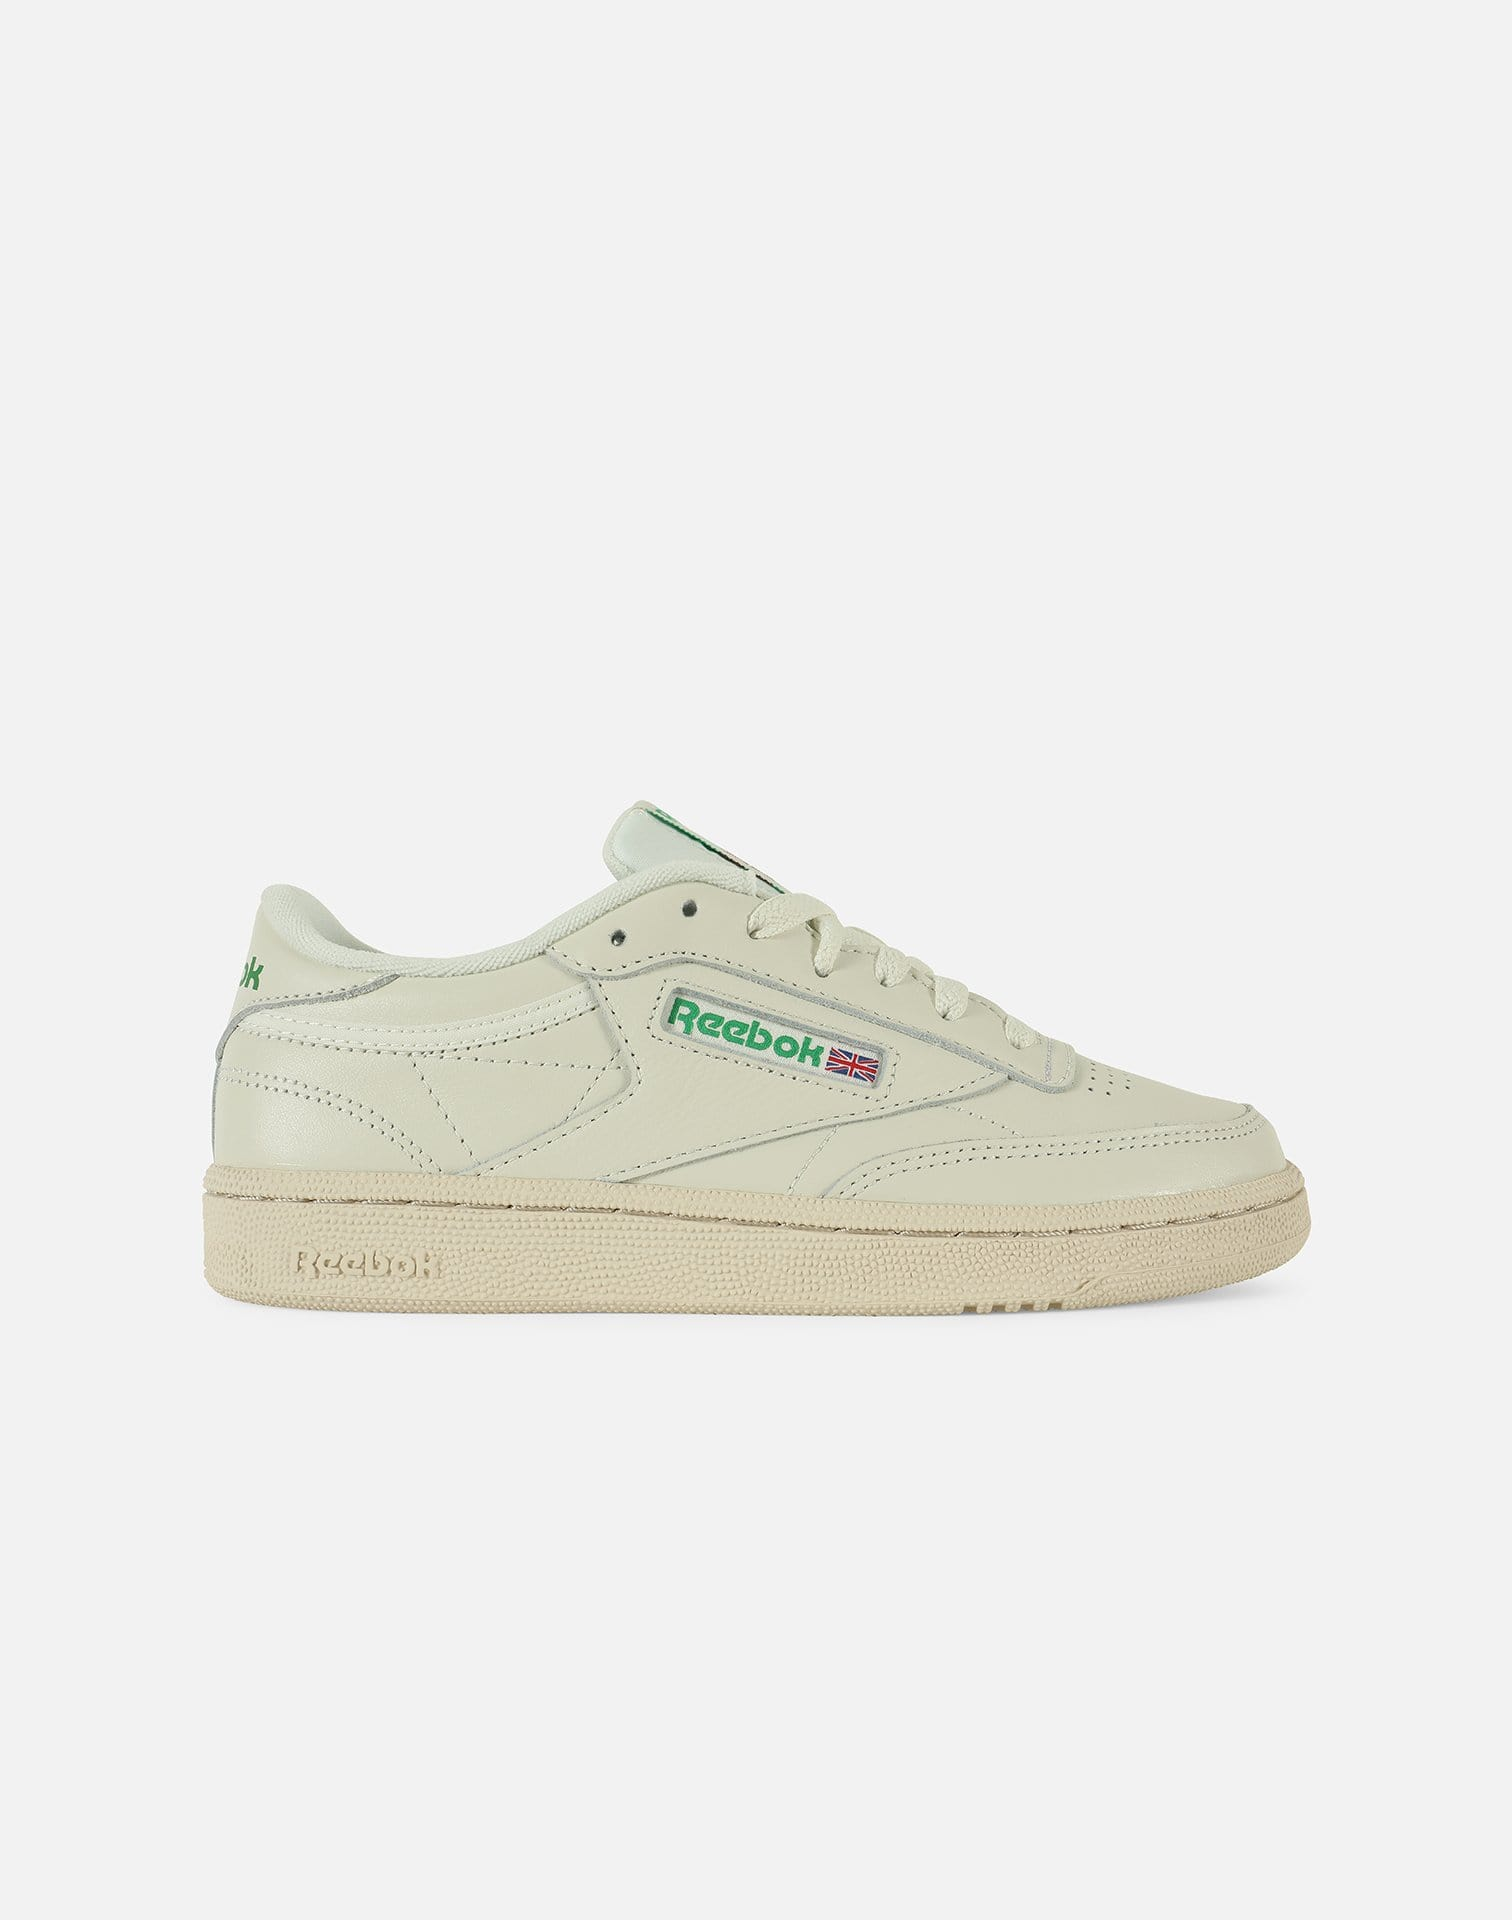 Reebok Women's Club c 85 Vintage